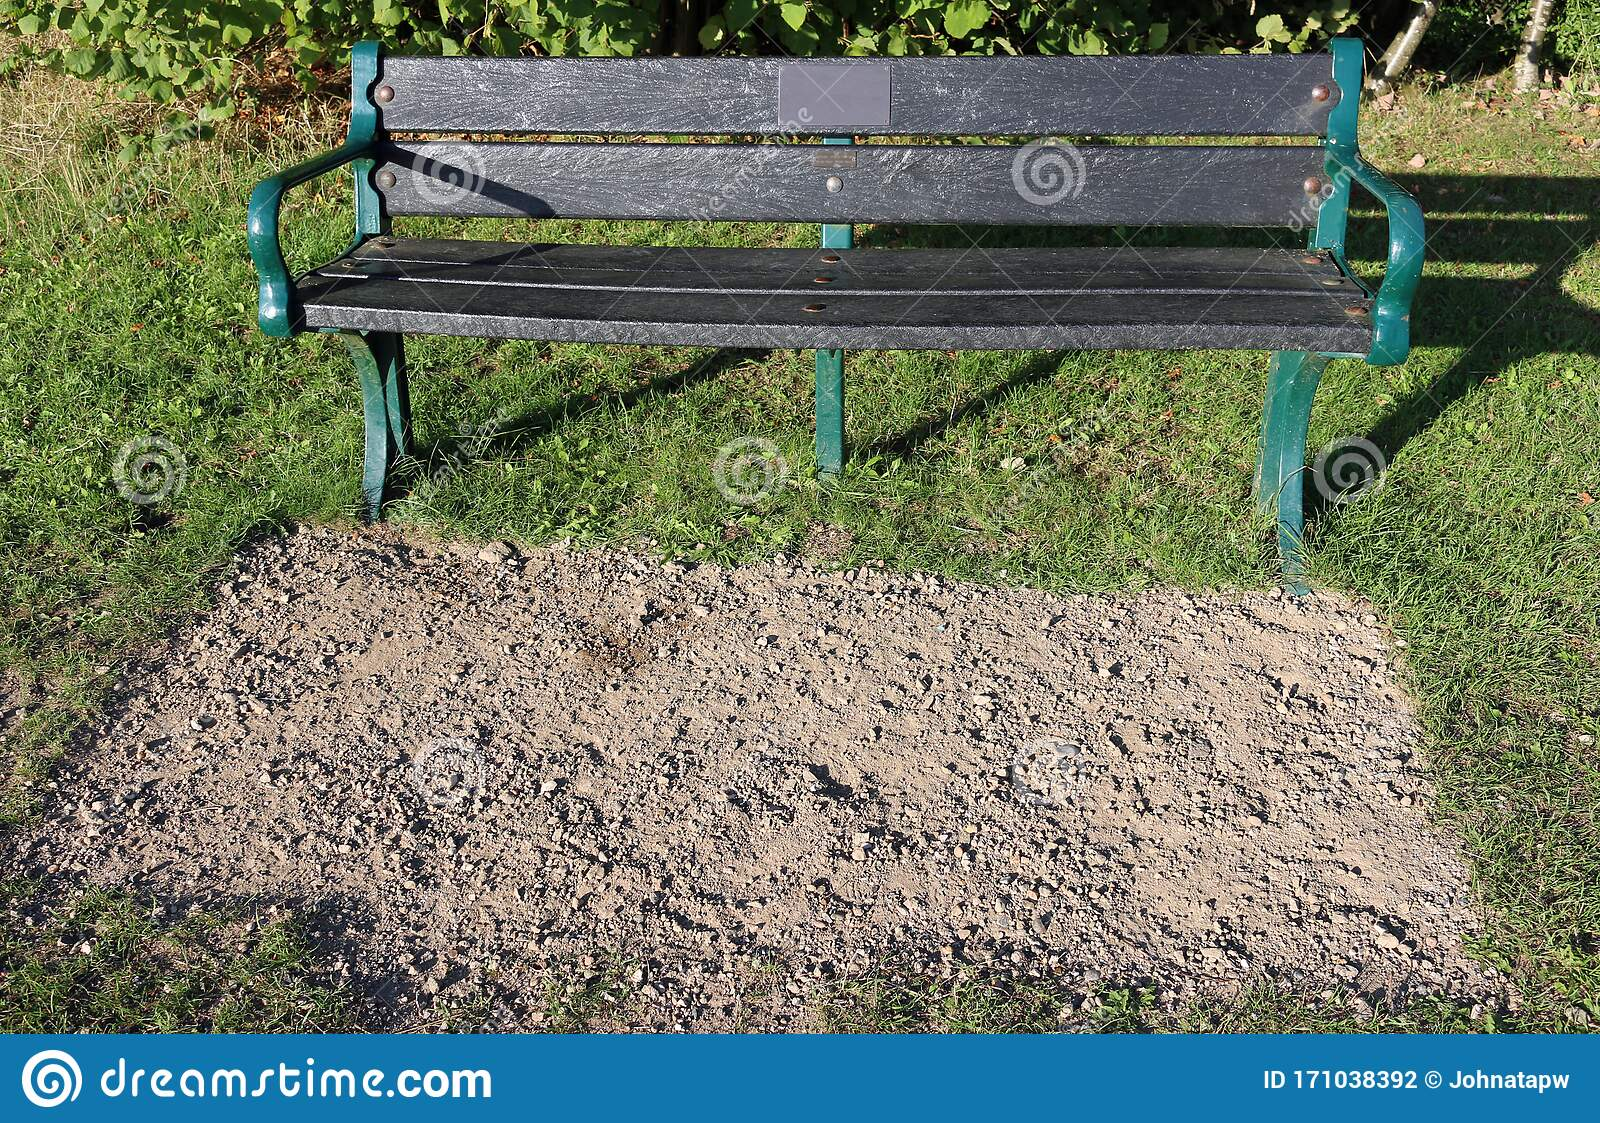 Picture of: Recycled Plastic Seat In A Park Stock Photo Image Of Metal Lawn 171038392